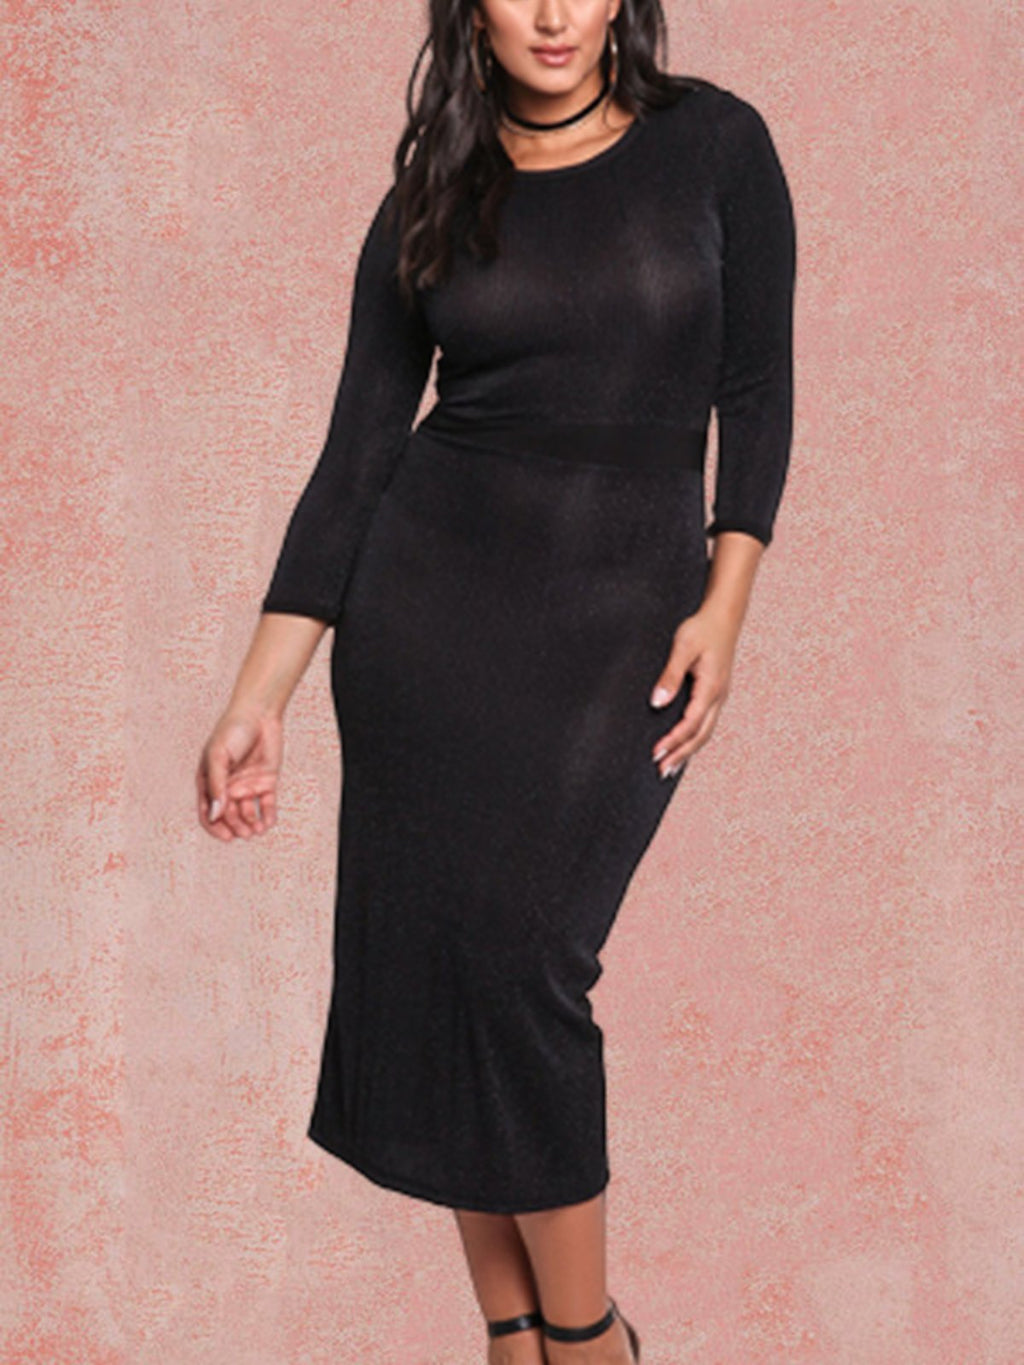 Long Sleeve Casual Plus Size Black Sexy Work Pencil Bodycon Dress Rikkishop